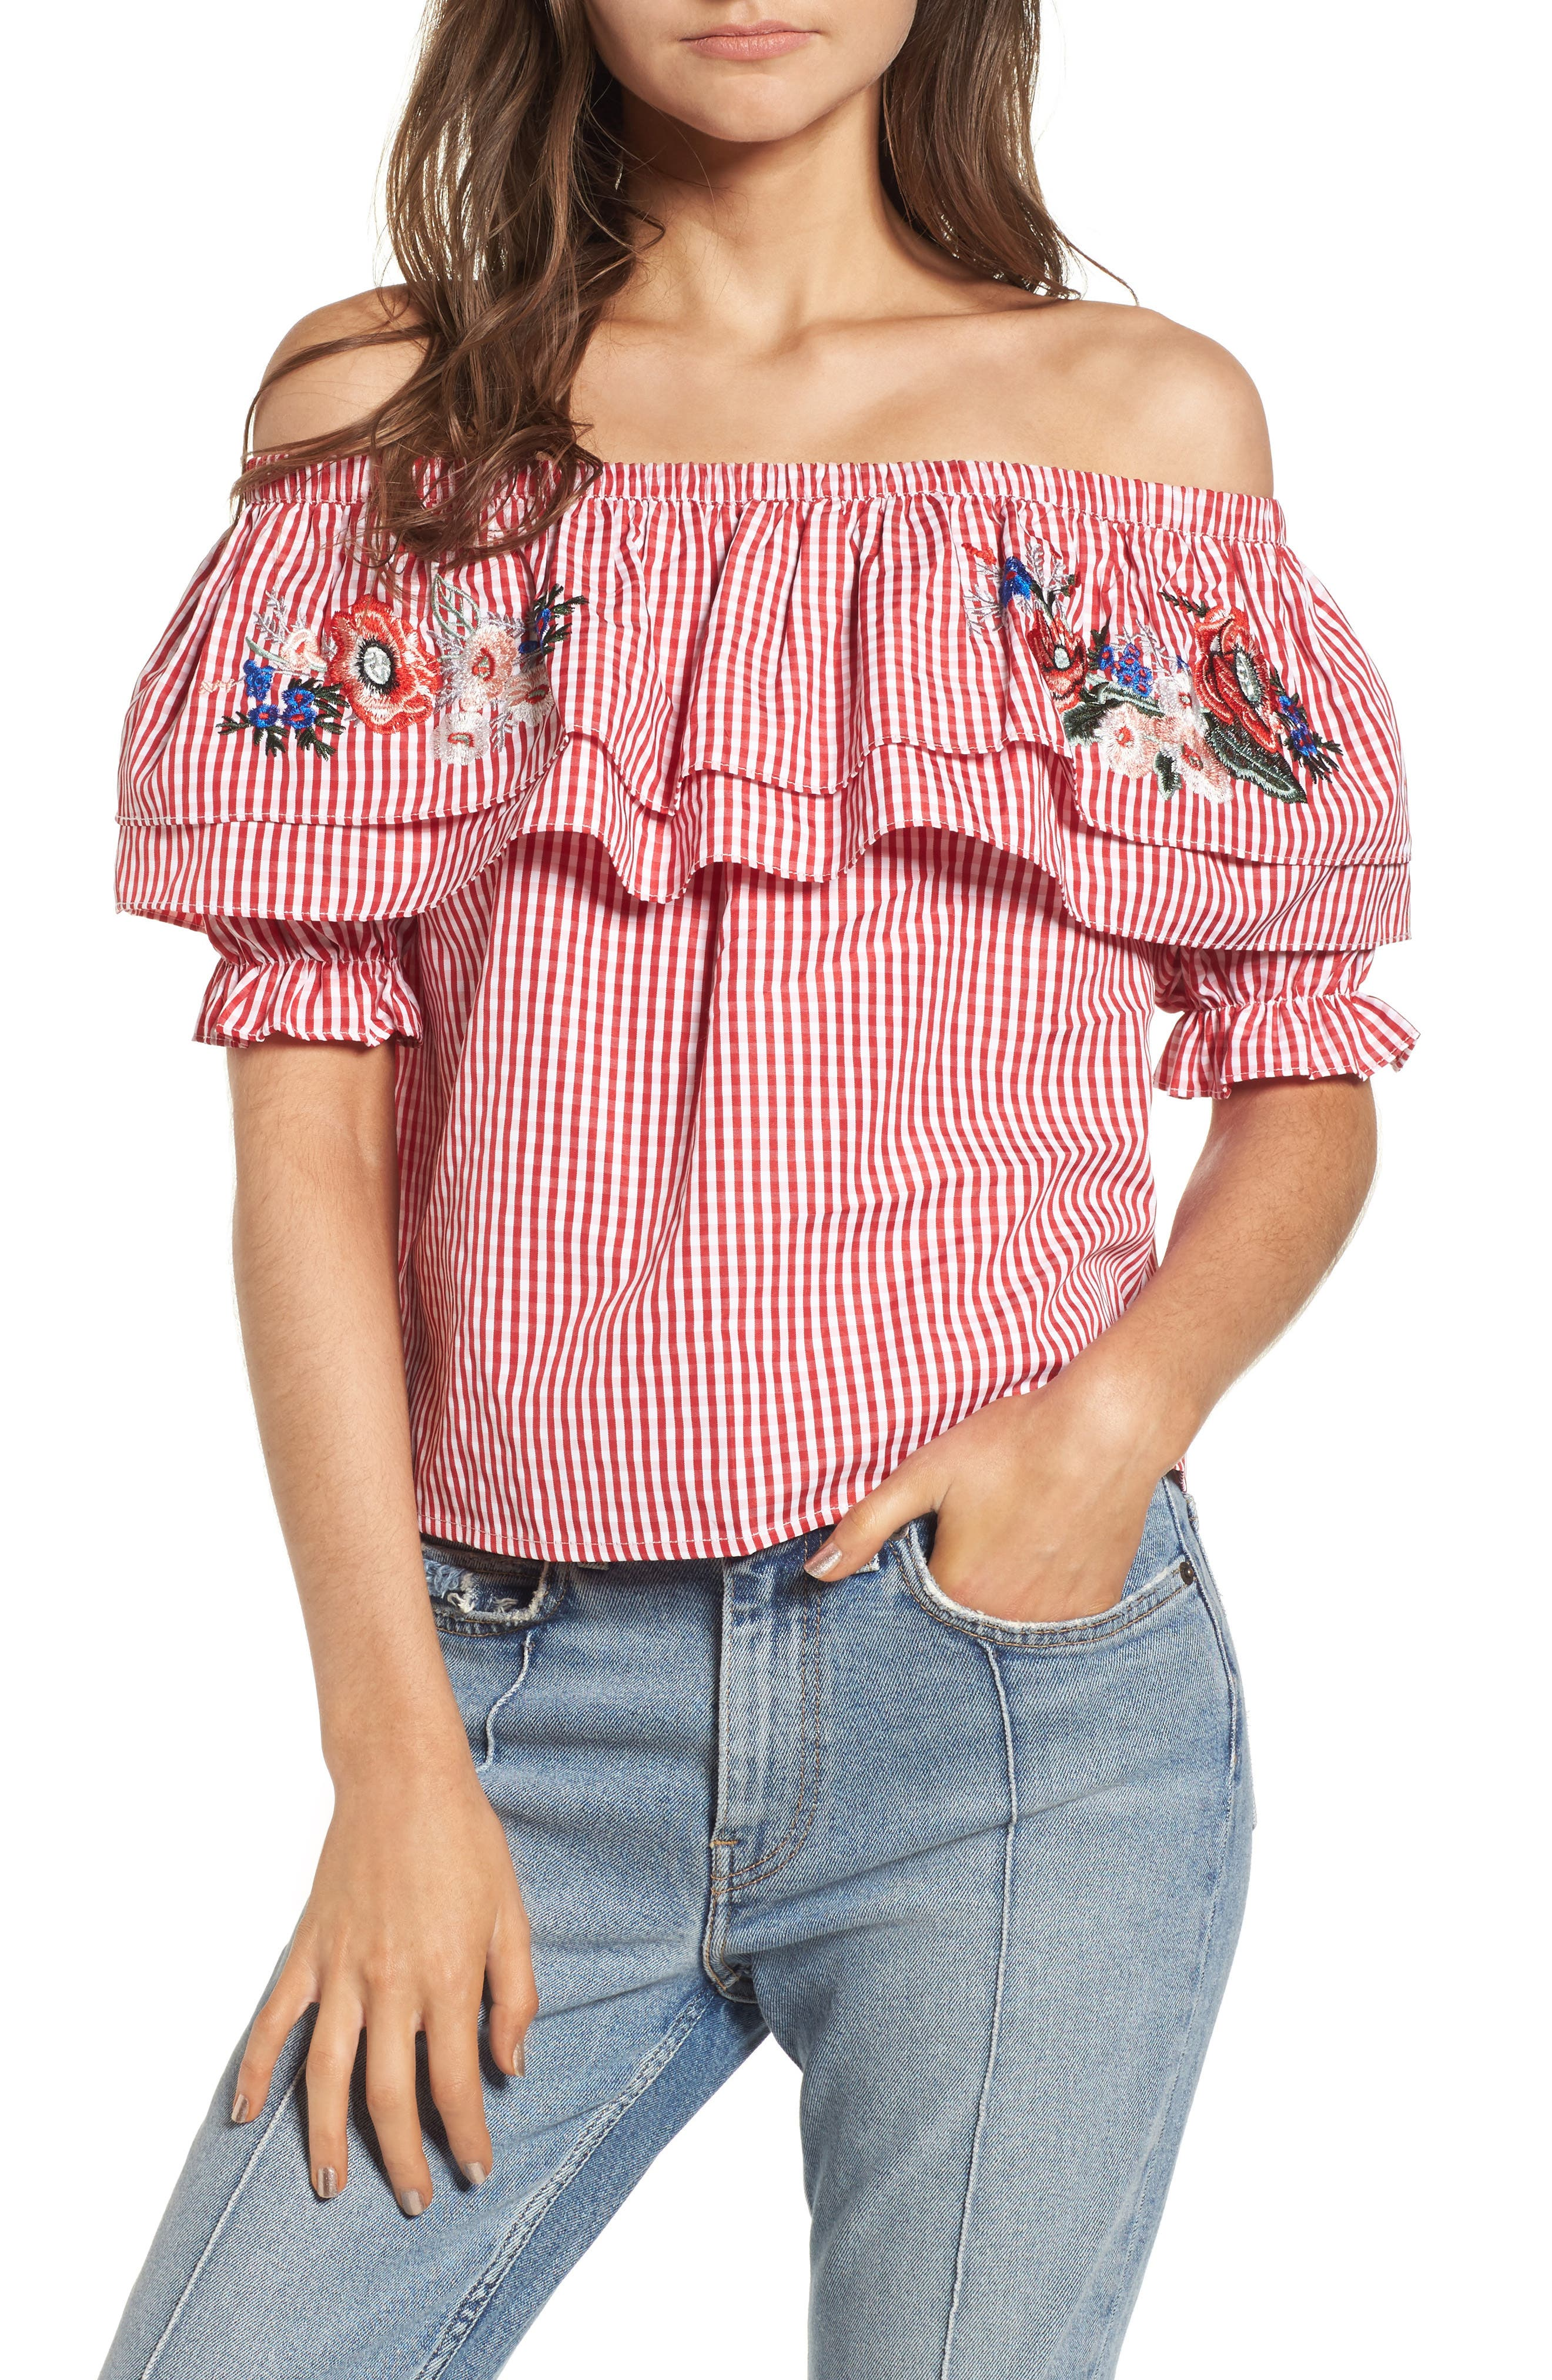 LOST + WANDER Embroidered Gingham Off the Shoulder Top, Main, color, 640